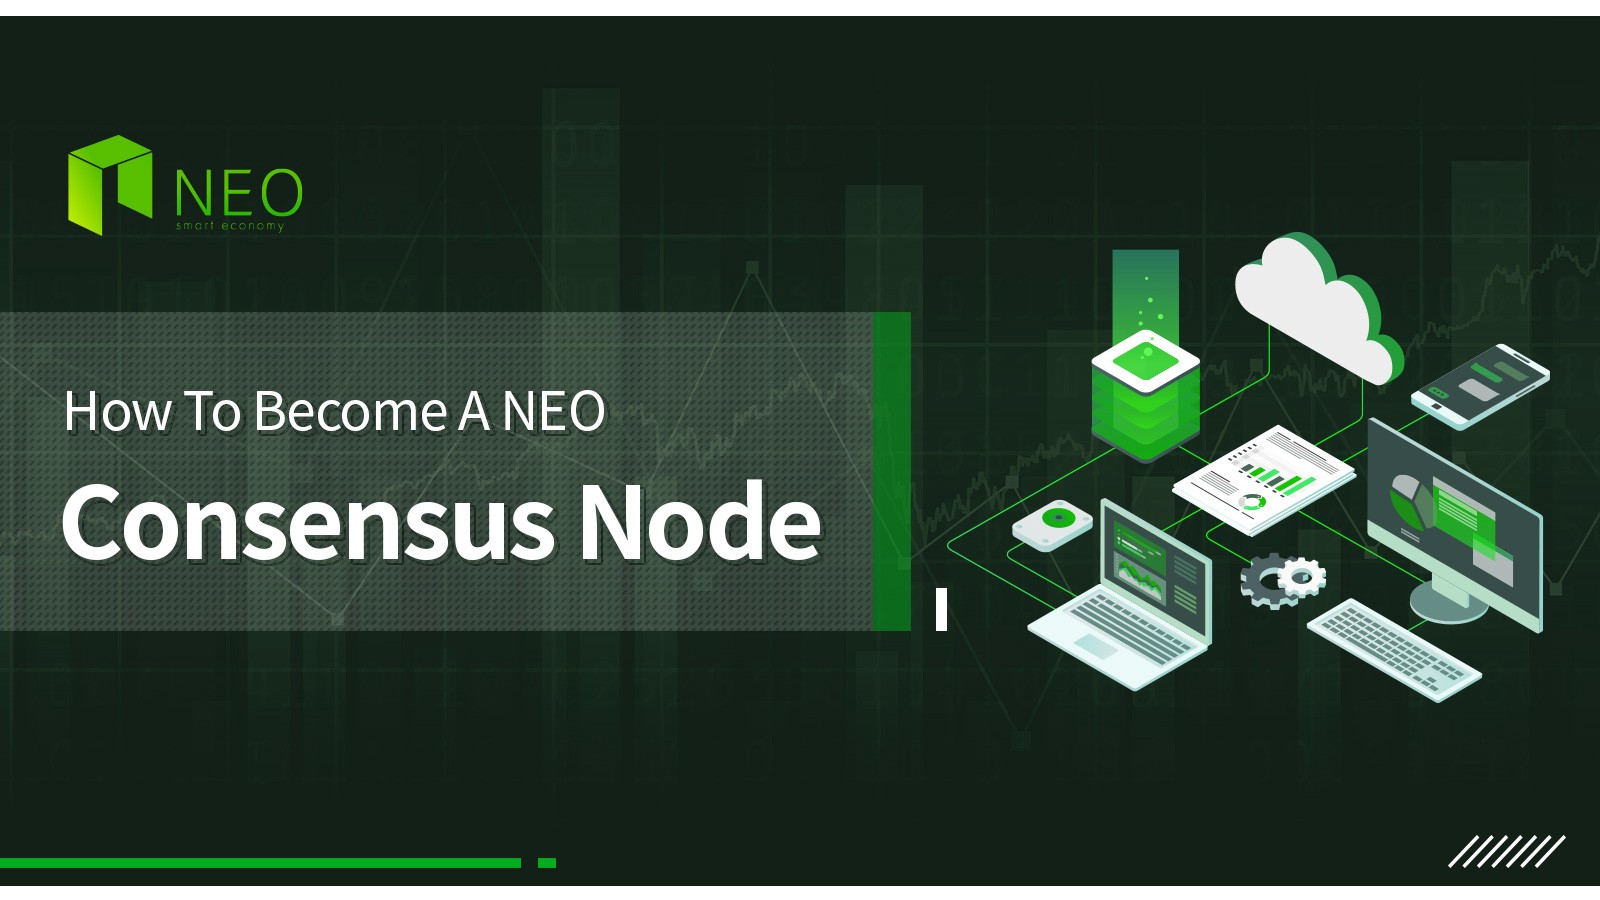 How To Become A NEO Consensus Node